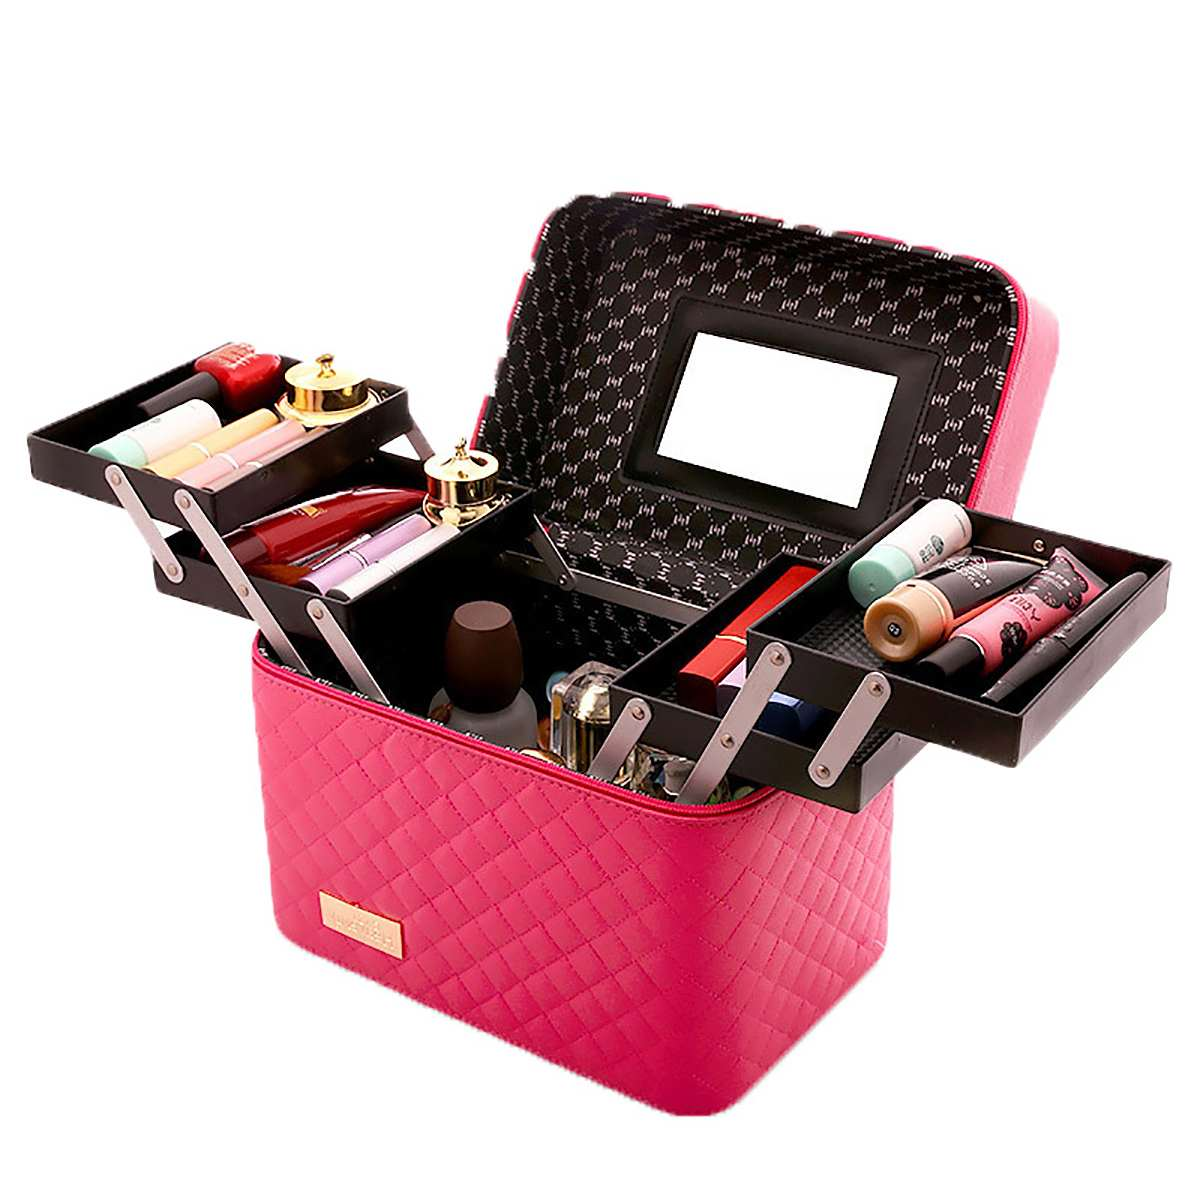 Women Large Capacity Professional Makeup Organizer Fashion Toiletry Cosmetic Bag Multilayer Storage Box Portable Pretty Suitcase|Cosmetic Bags & Cases| - AliExpress